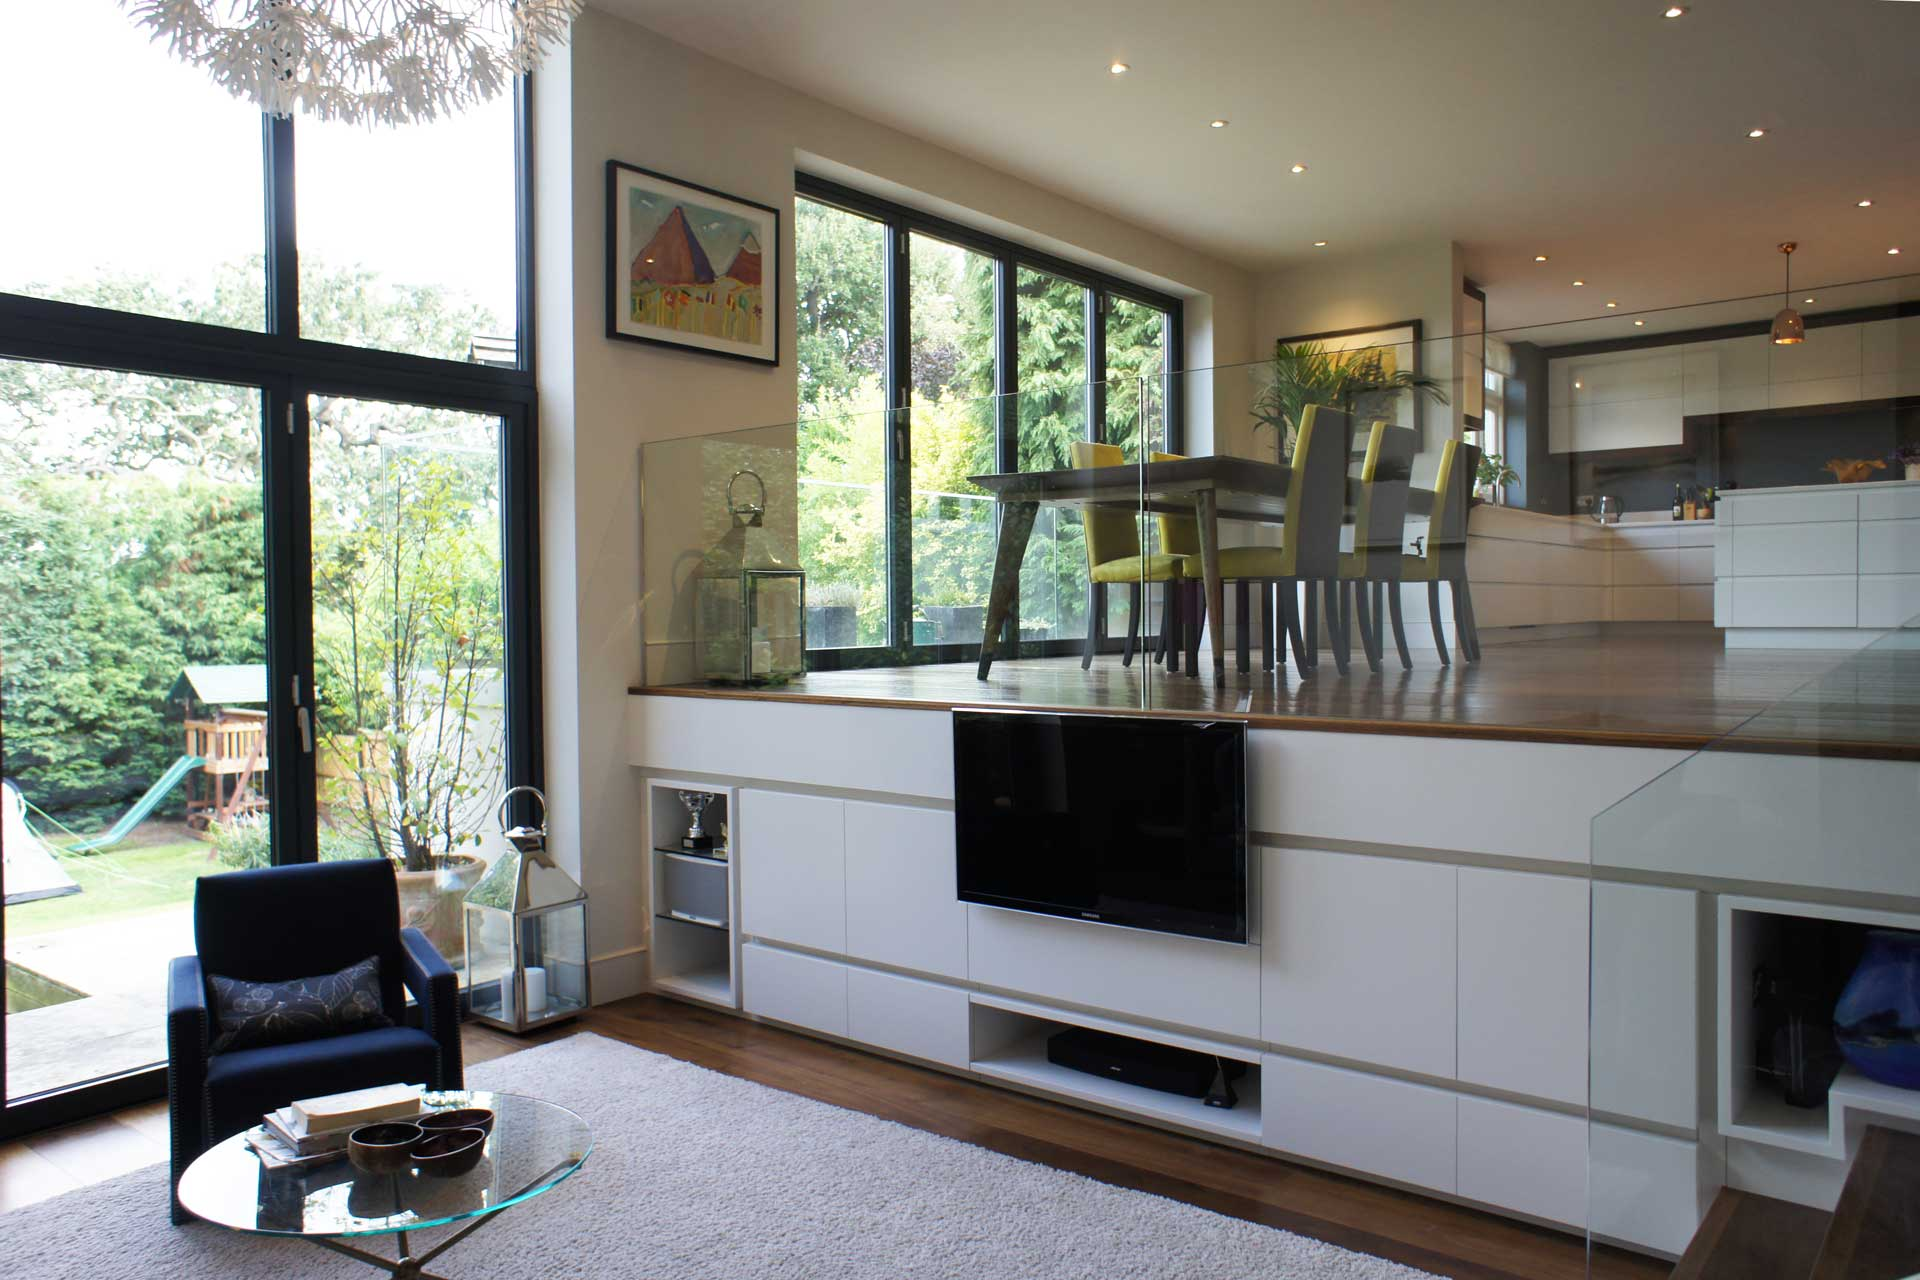 Ernle Road Wimbledon Remodelling, Refurbishing and Extending Of A Detached House 04